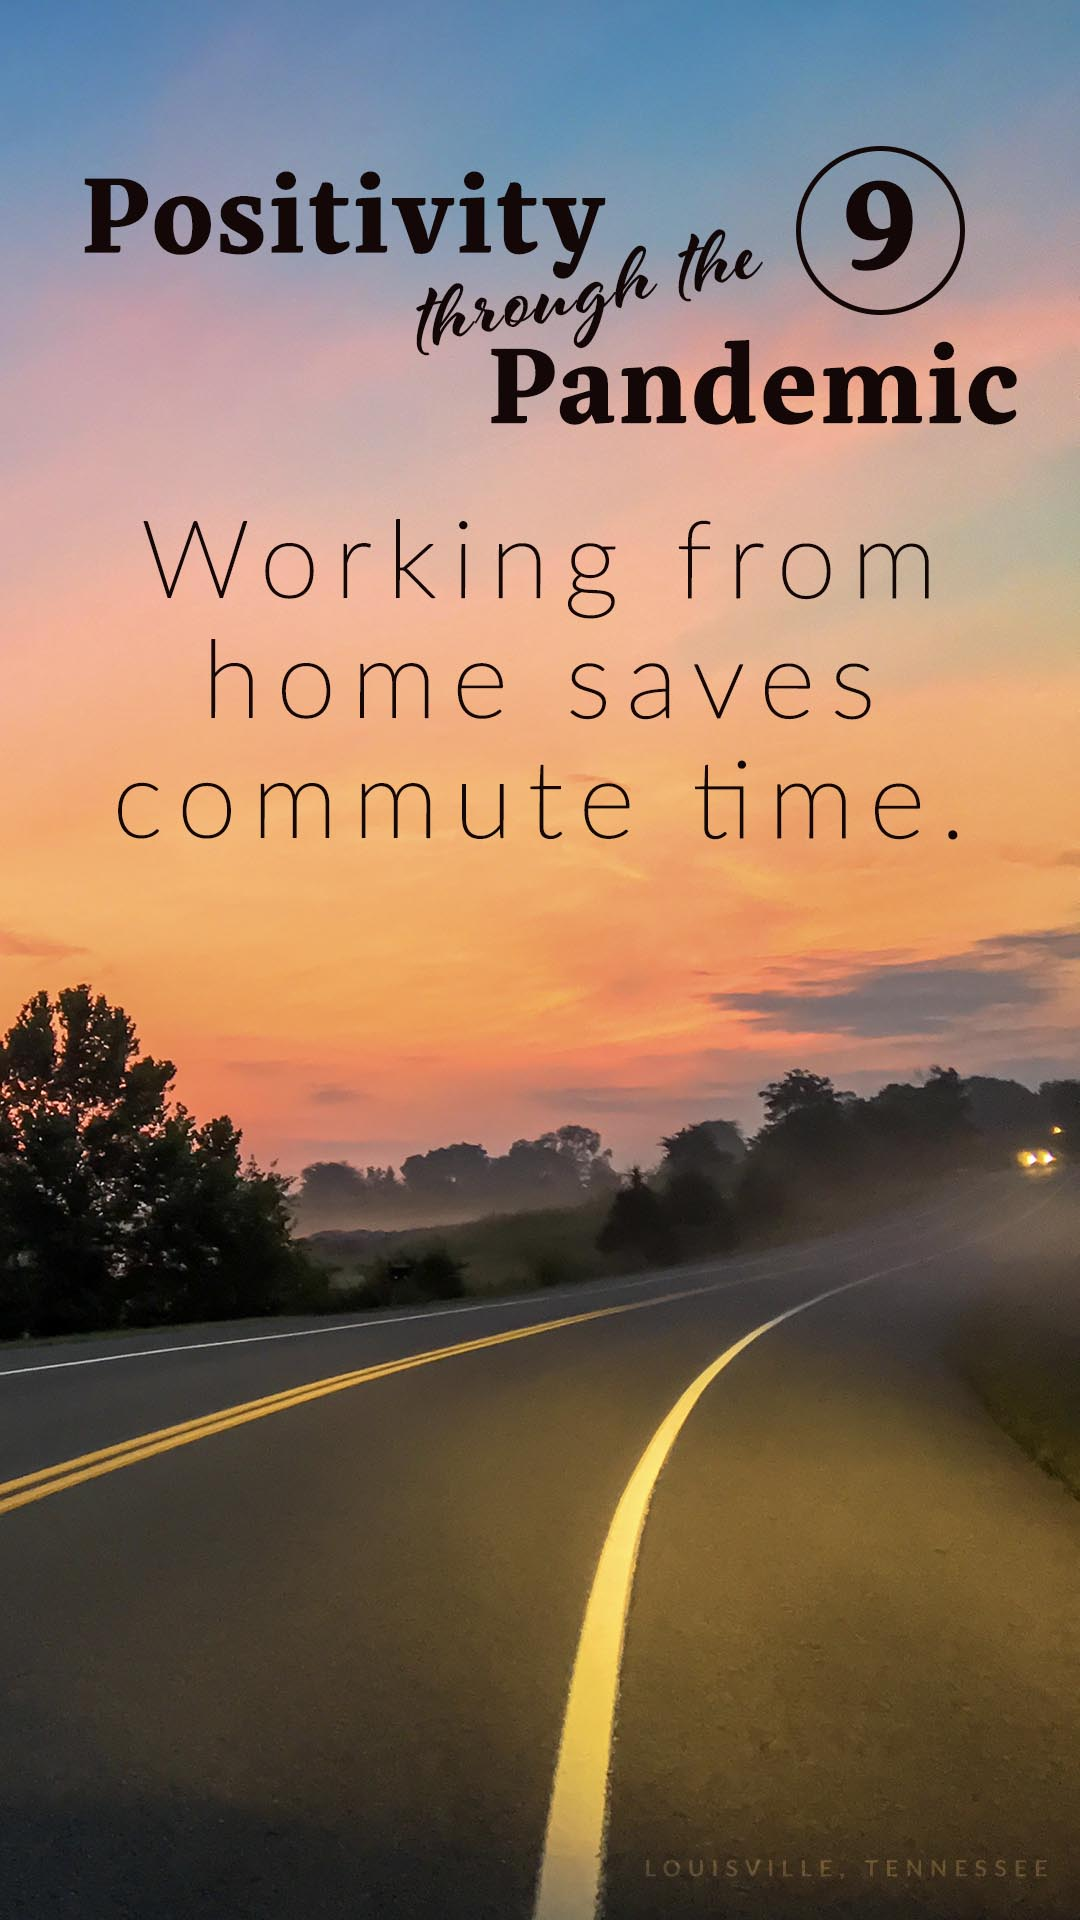 Positivity through the Pandemic #9: Working from home saves commute time